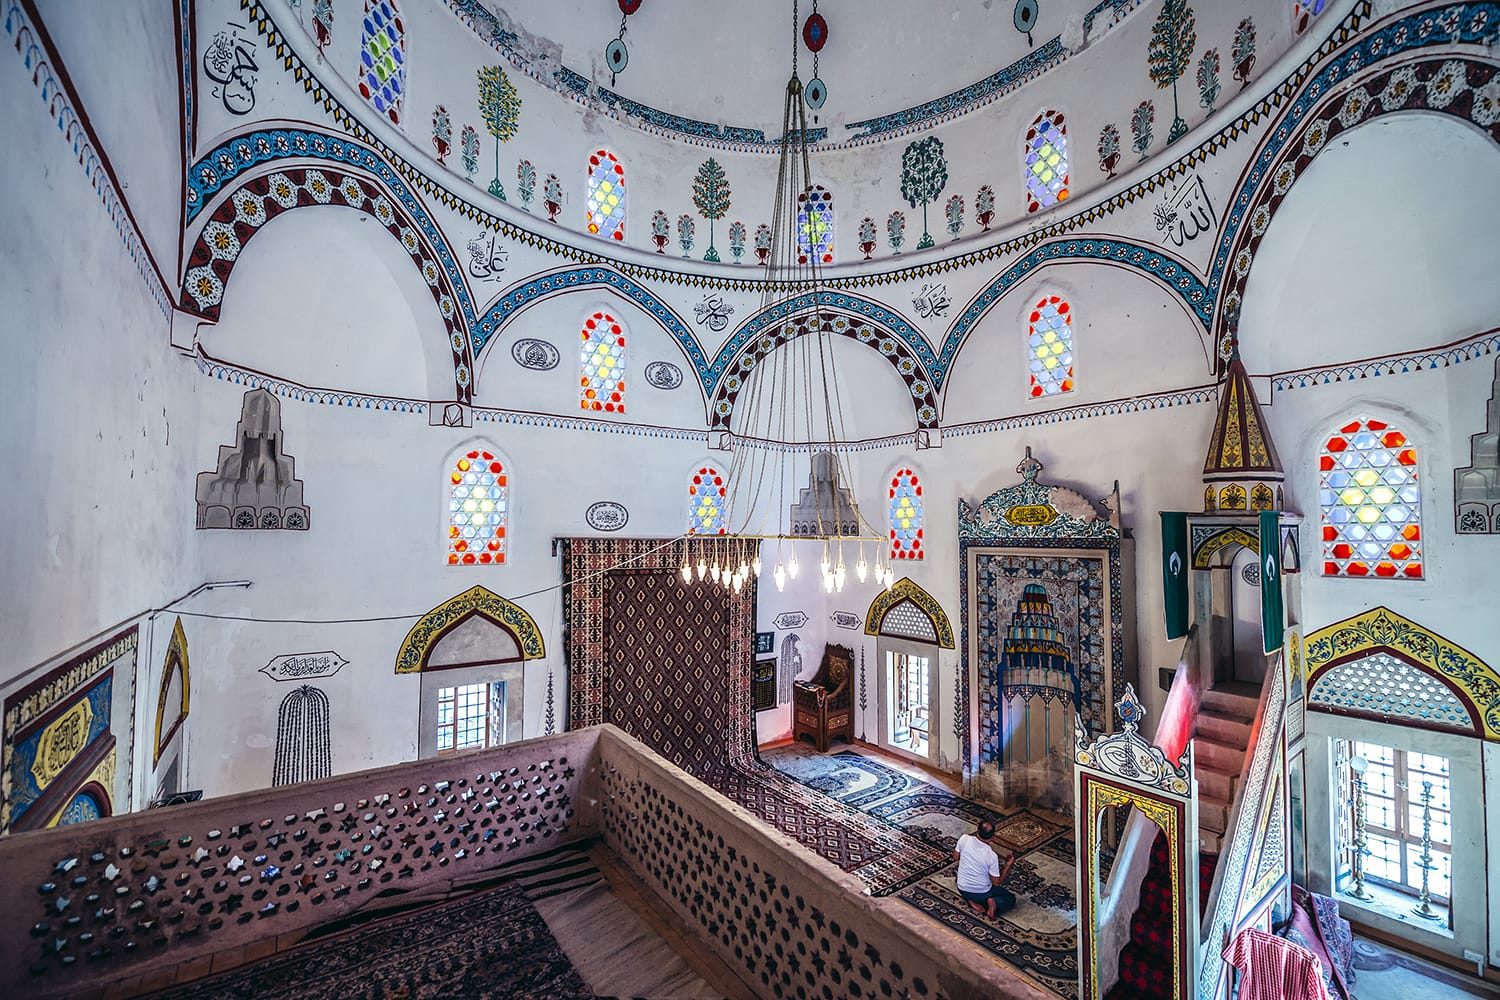 Interior of 17th century Koski Mehmed Pasha Mosque in Mostar, Bosnia and Herzegovina